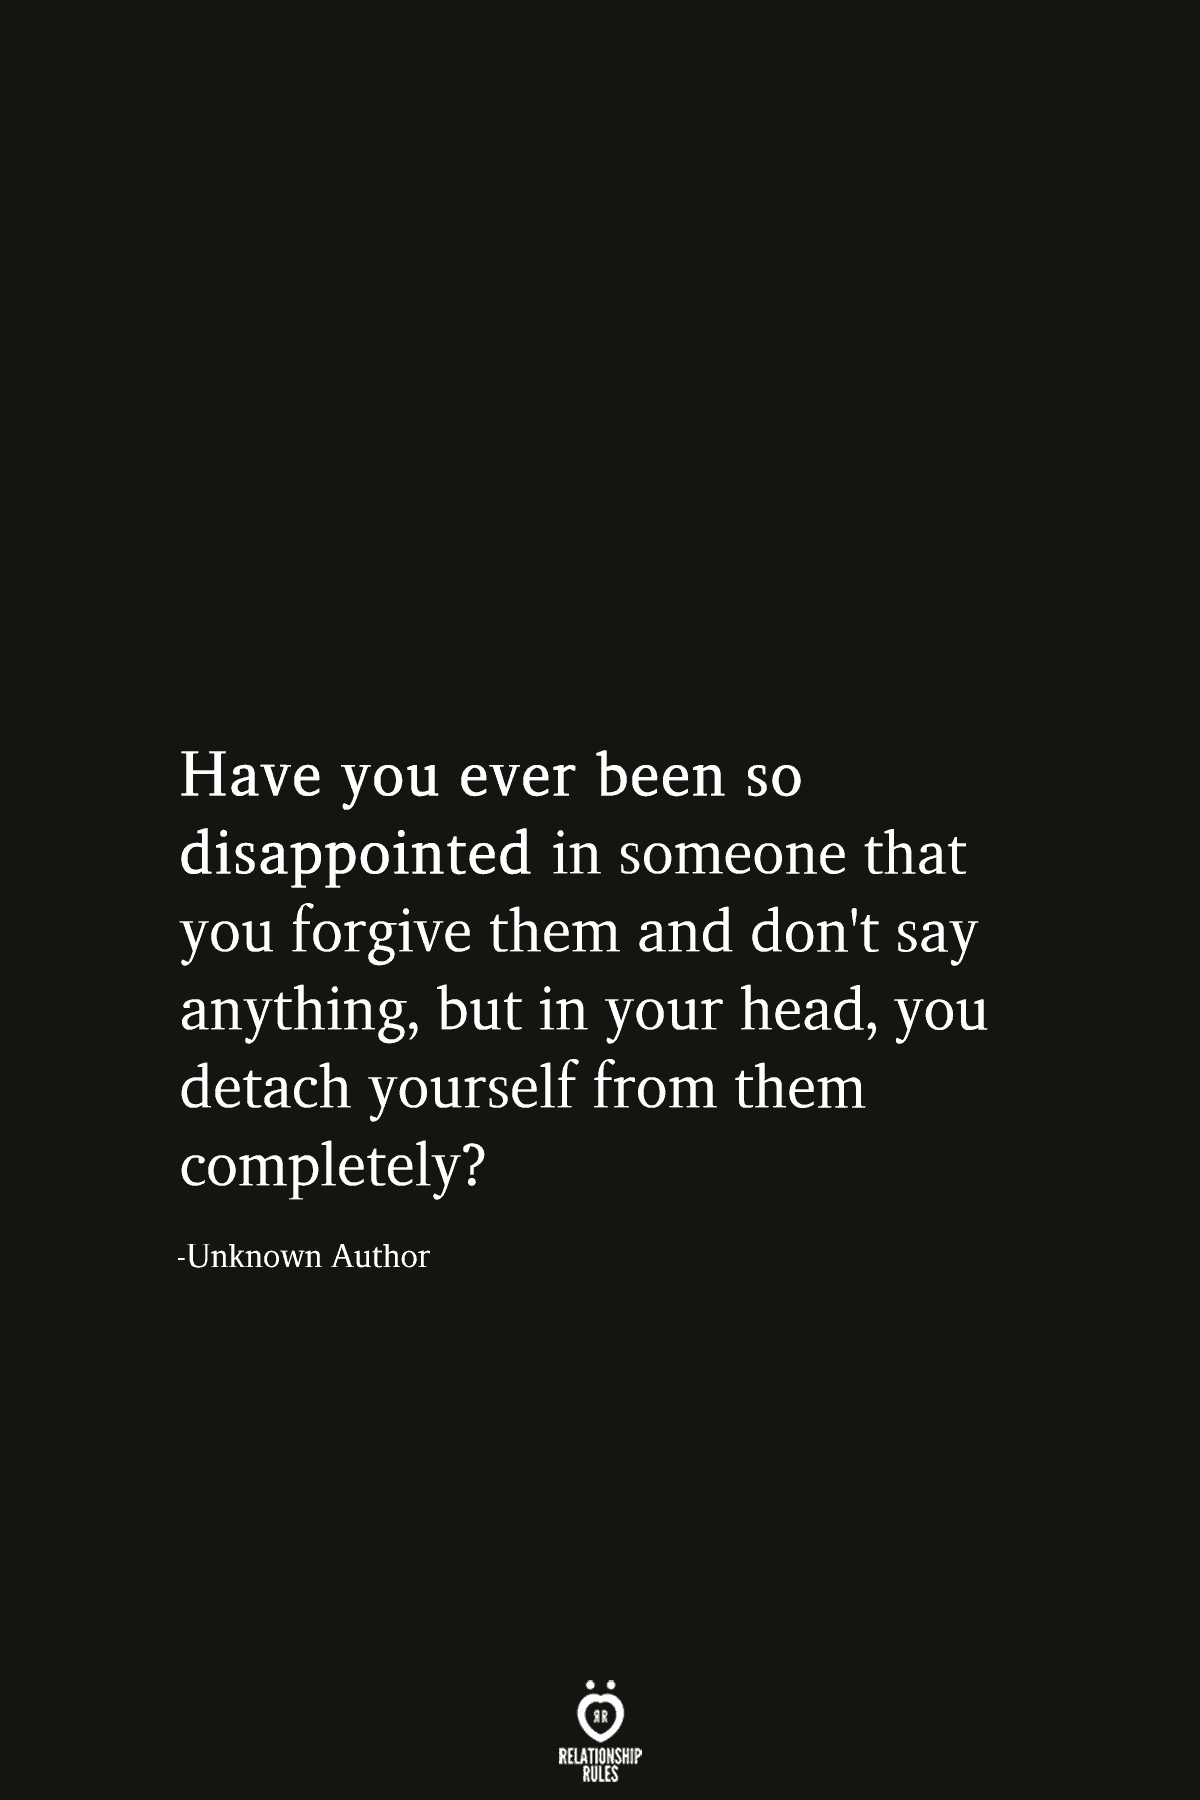 Have You Ever Been So Disappointed In Someone That You Forgive Them